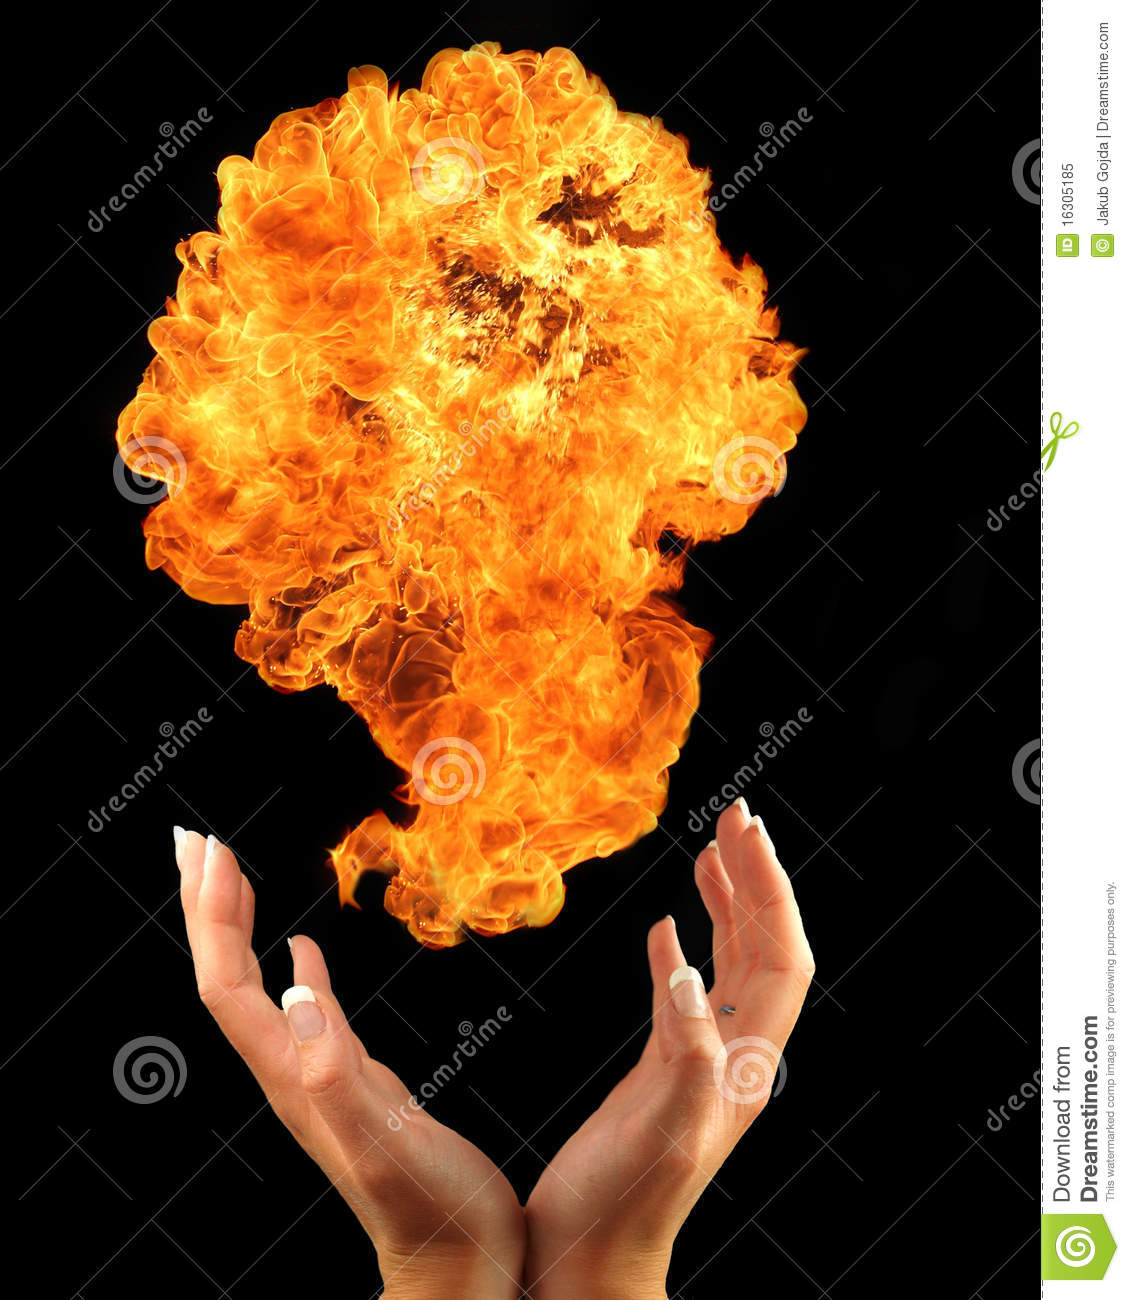 FIre hands stock image. Image of campfire, energy, hand - 16305185 for Girl With Fire In Hands  545xkb